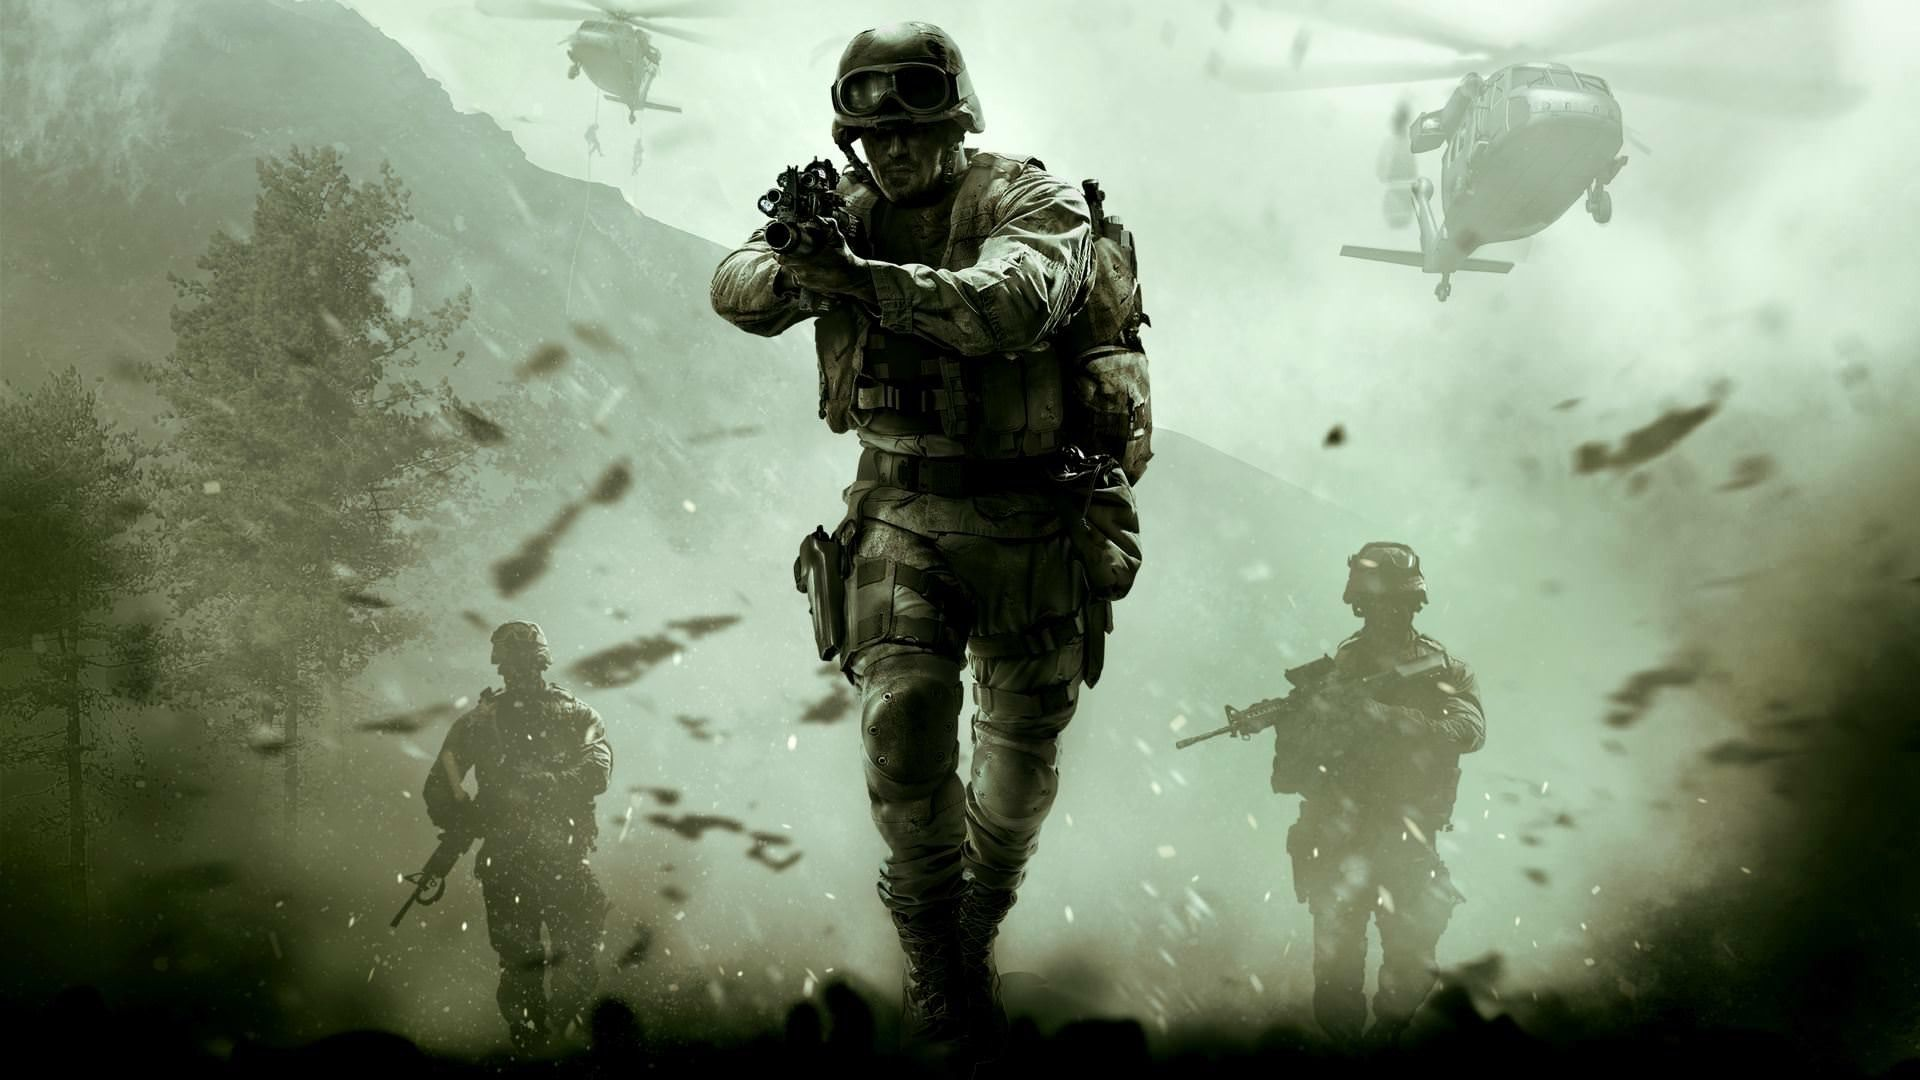 4k Call Of Duty Wallpapers Top Free 4k Call Of Duty Backgrounds